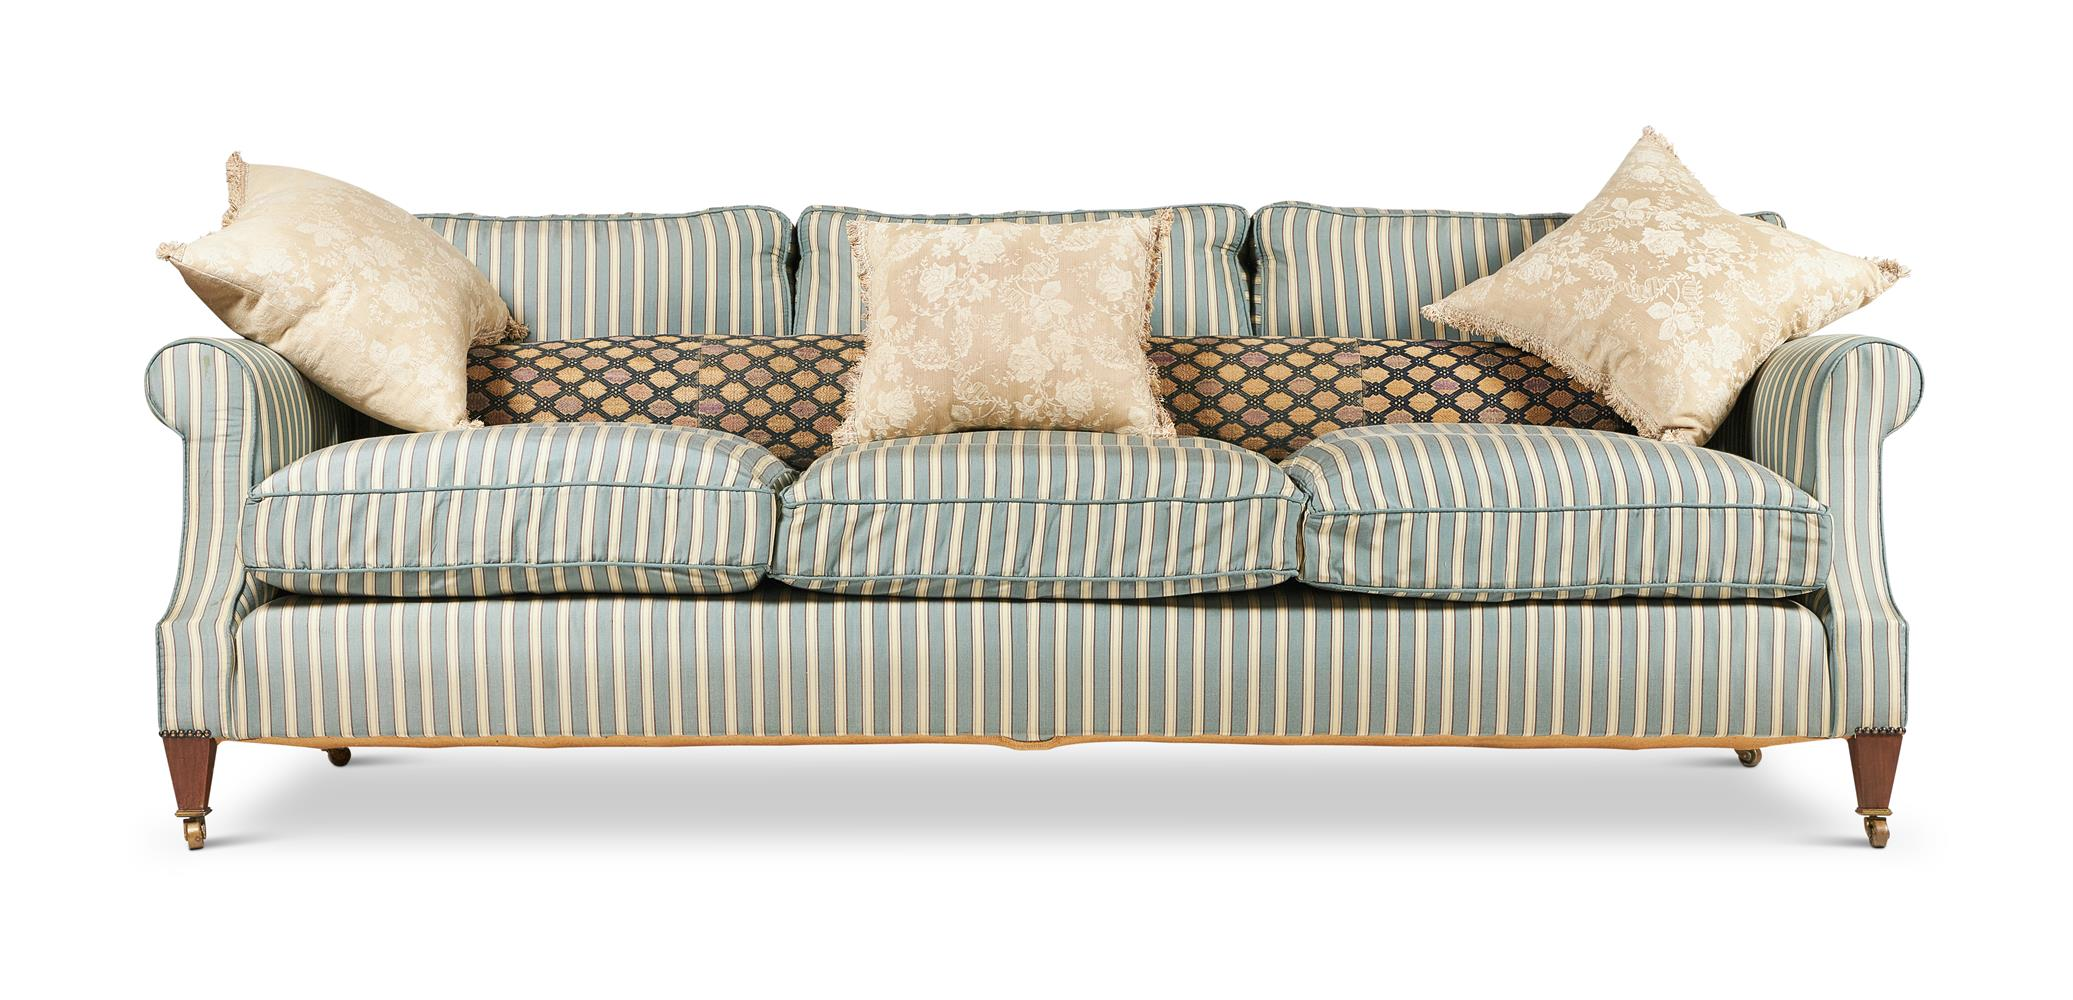 A LARGE THREE SEATER SOFA, LATE 20TH CENTURY - Image 2 of 2